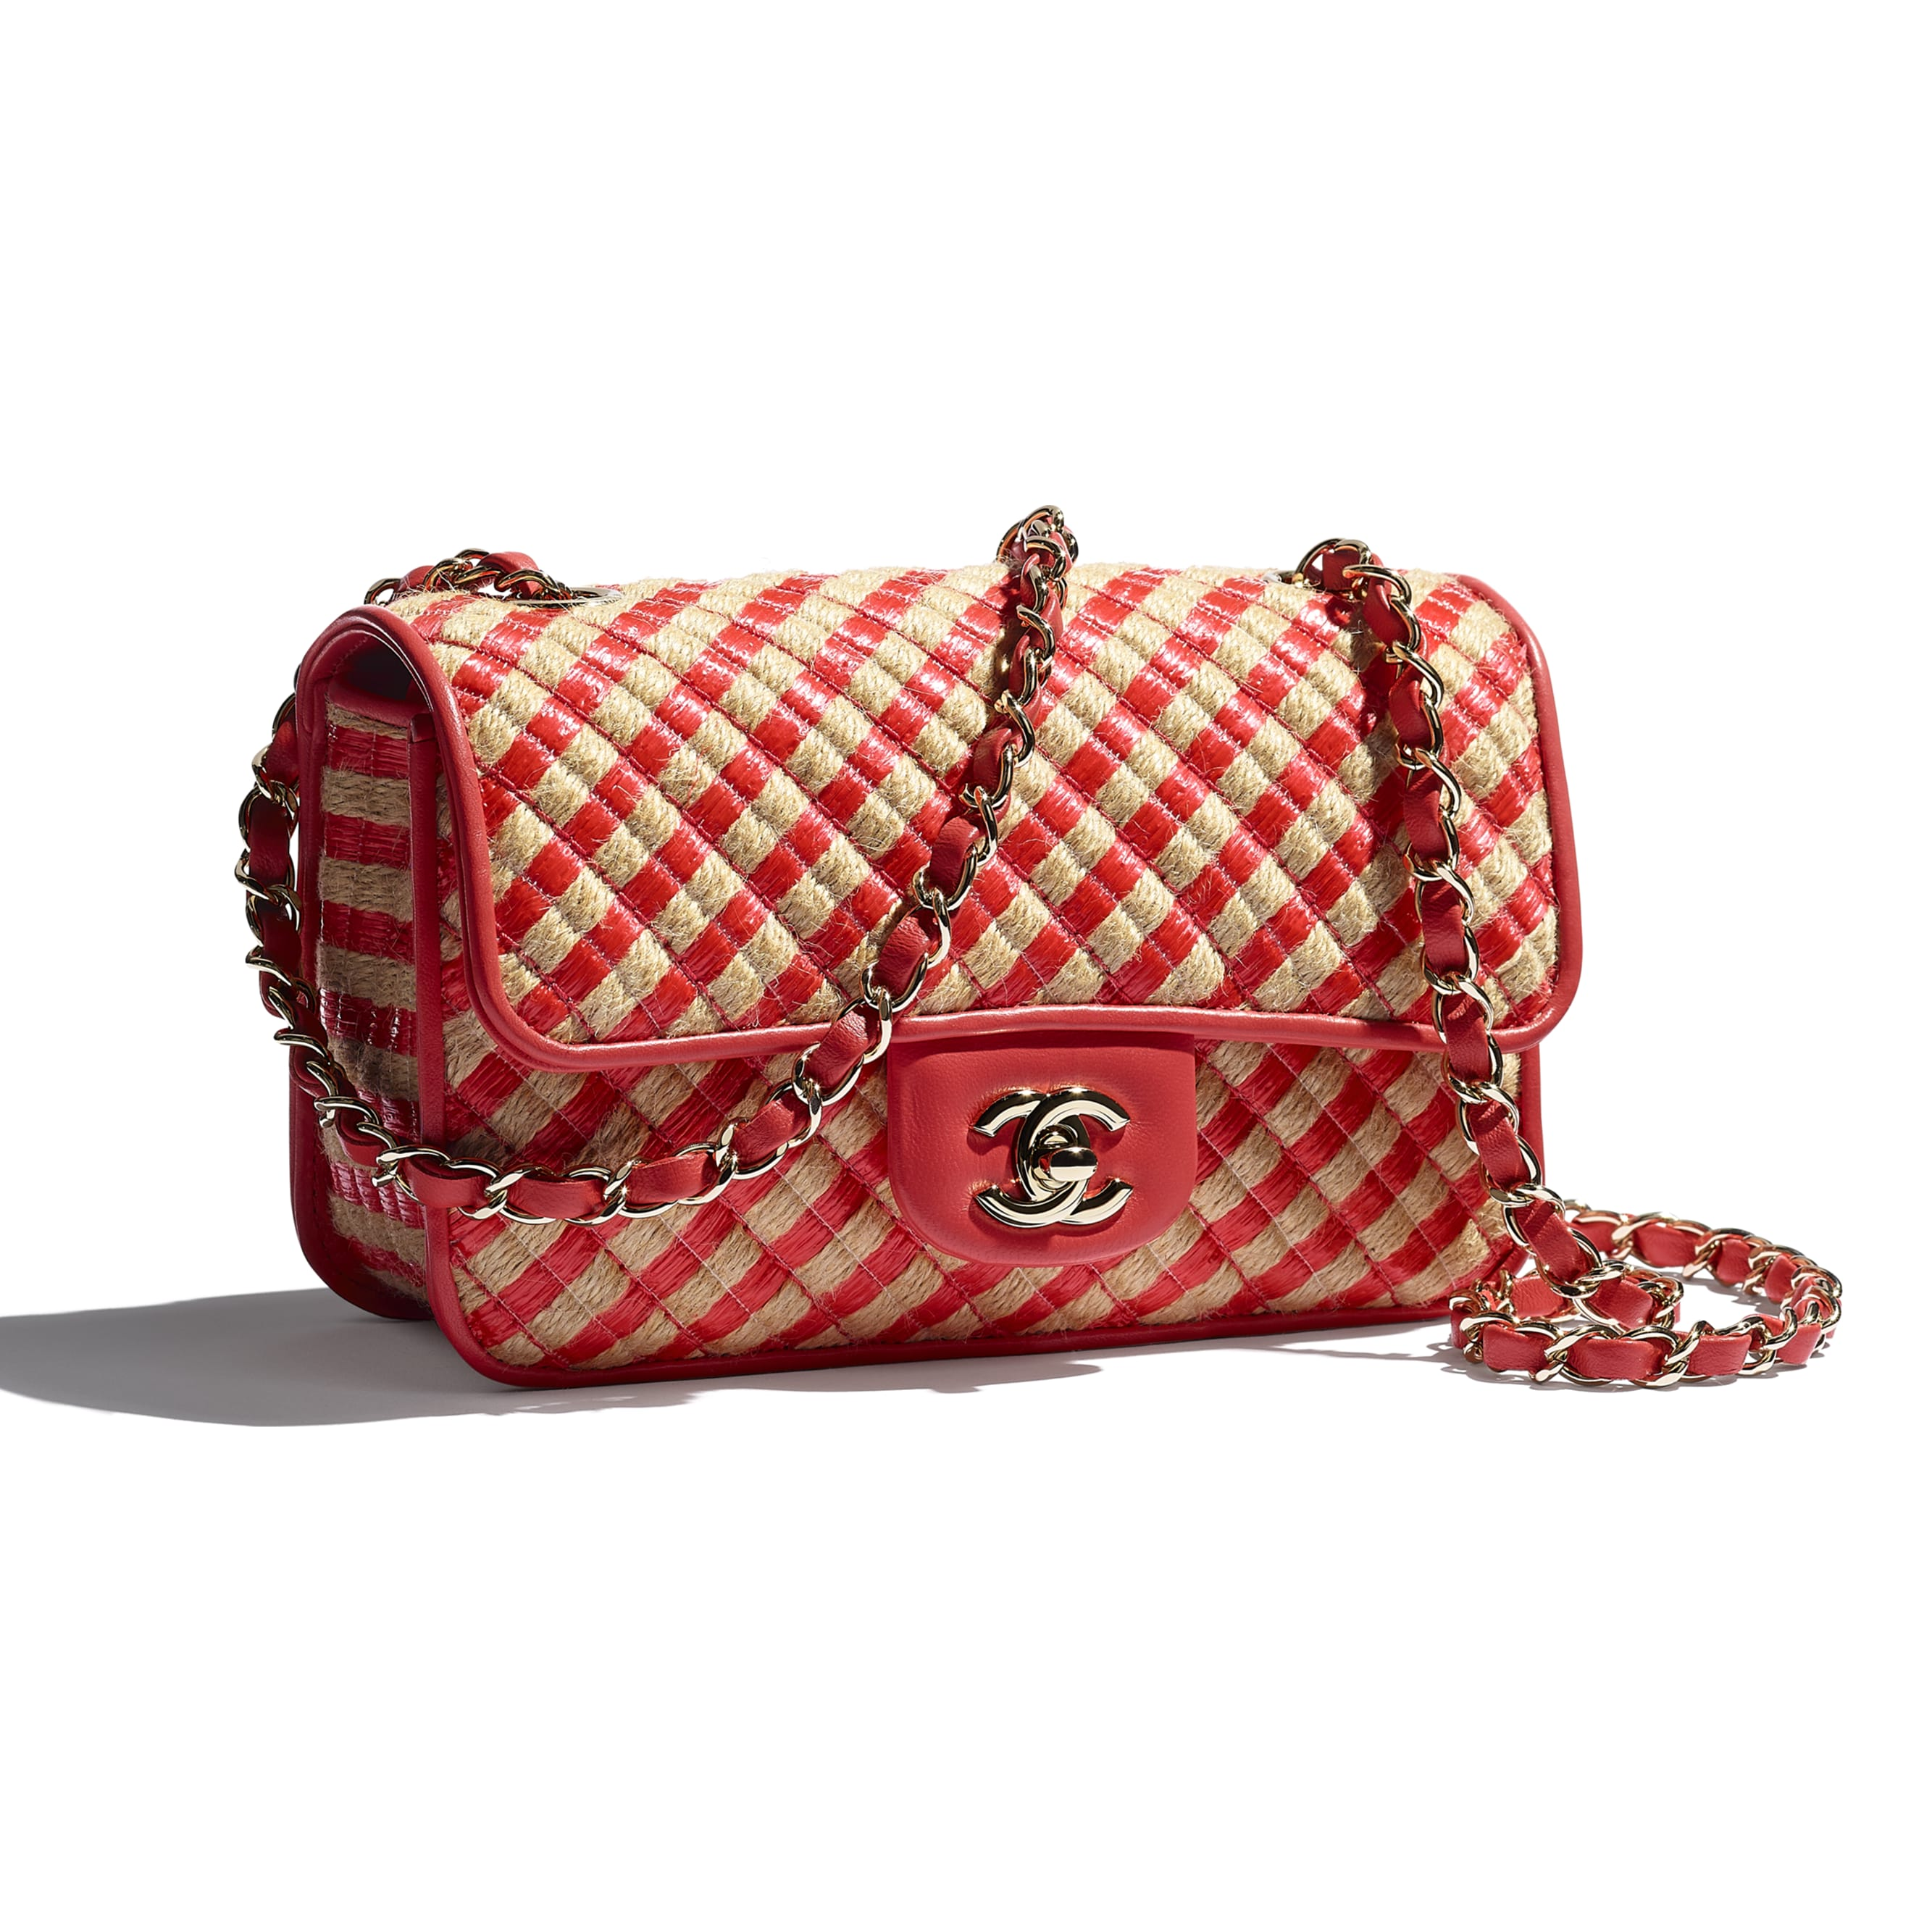 Small Flap Bag - Red & Beige - Raffia, Jute Thread & Gold-Tone Metal - CHANEL - Extra view - see standard sized version